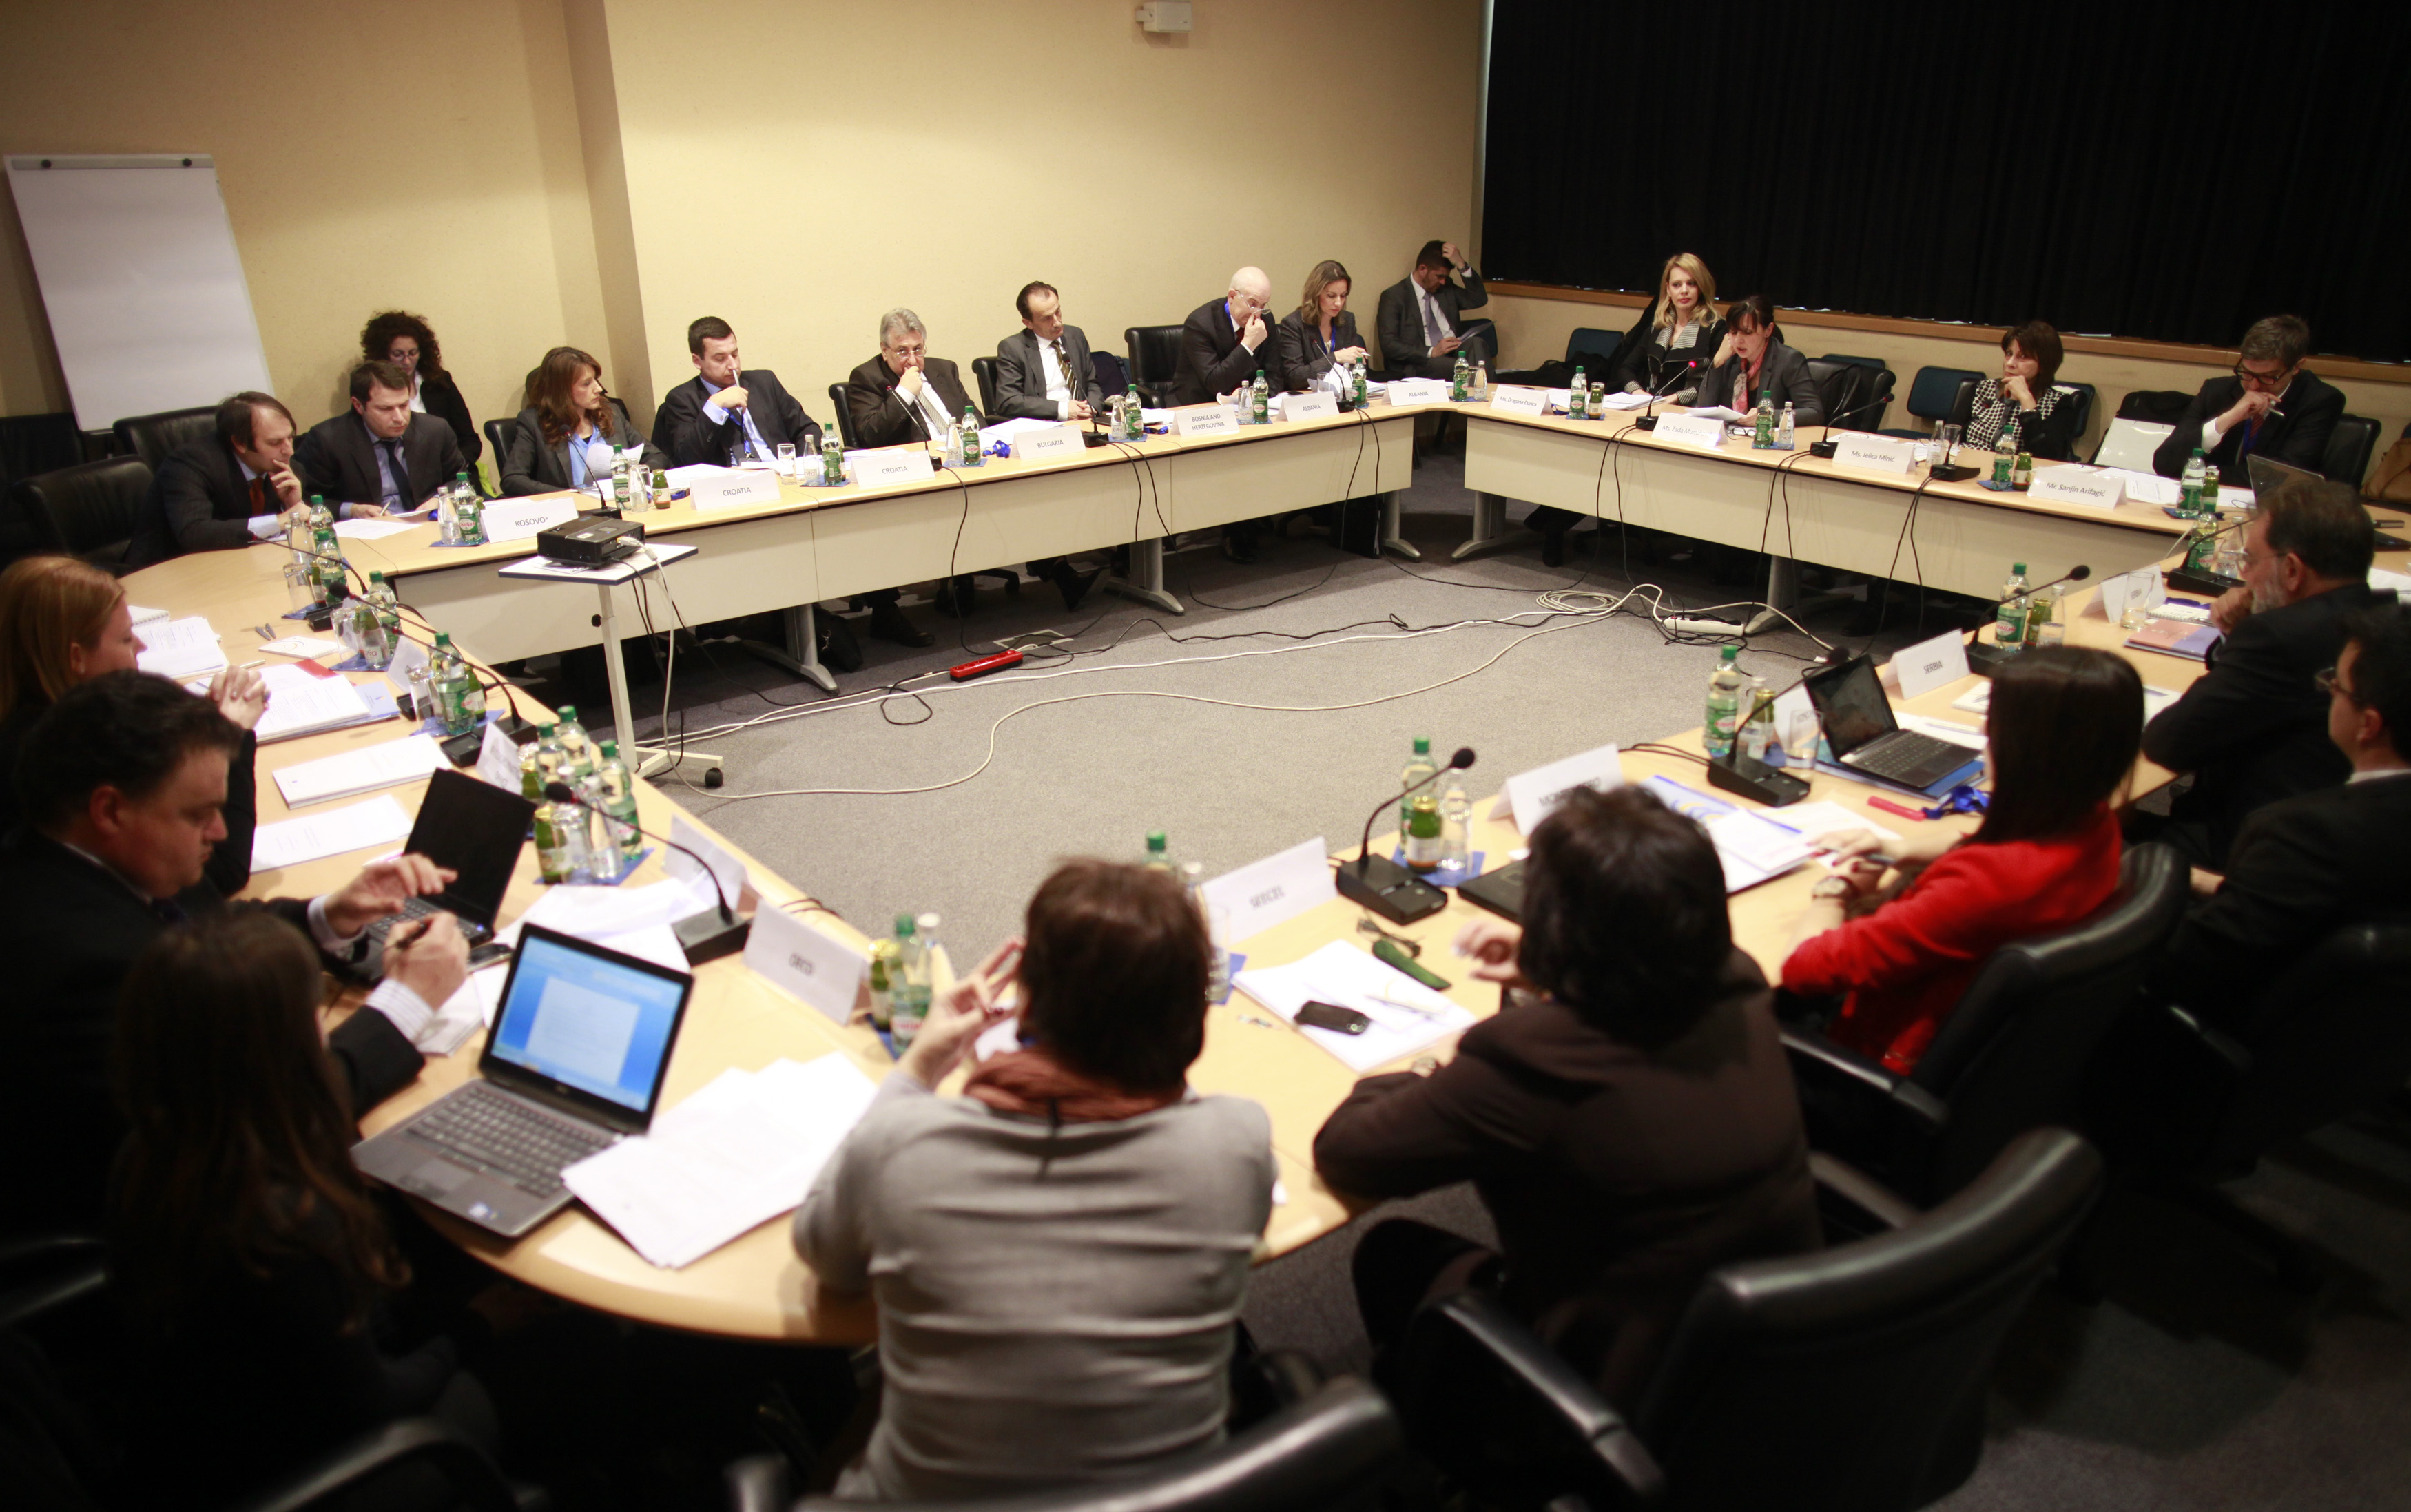 12th meeting of the RCC's South East Europe Investment Committee (SEEIC) takes place in Sarajevo, on 19 March 2013 (Photo: RCC/Dado Ruvic).